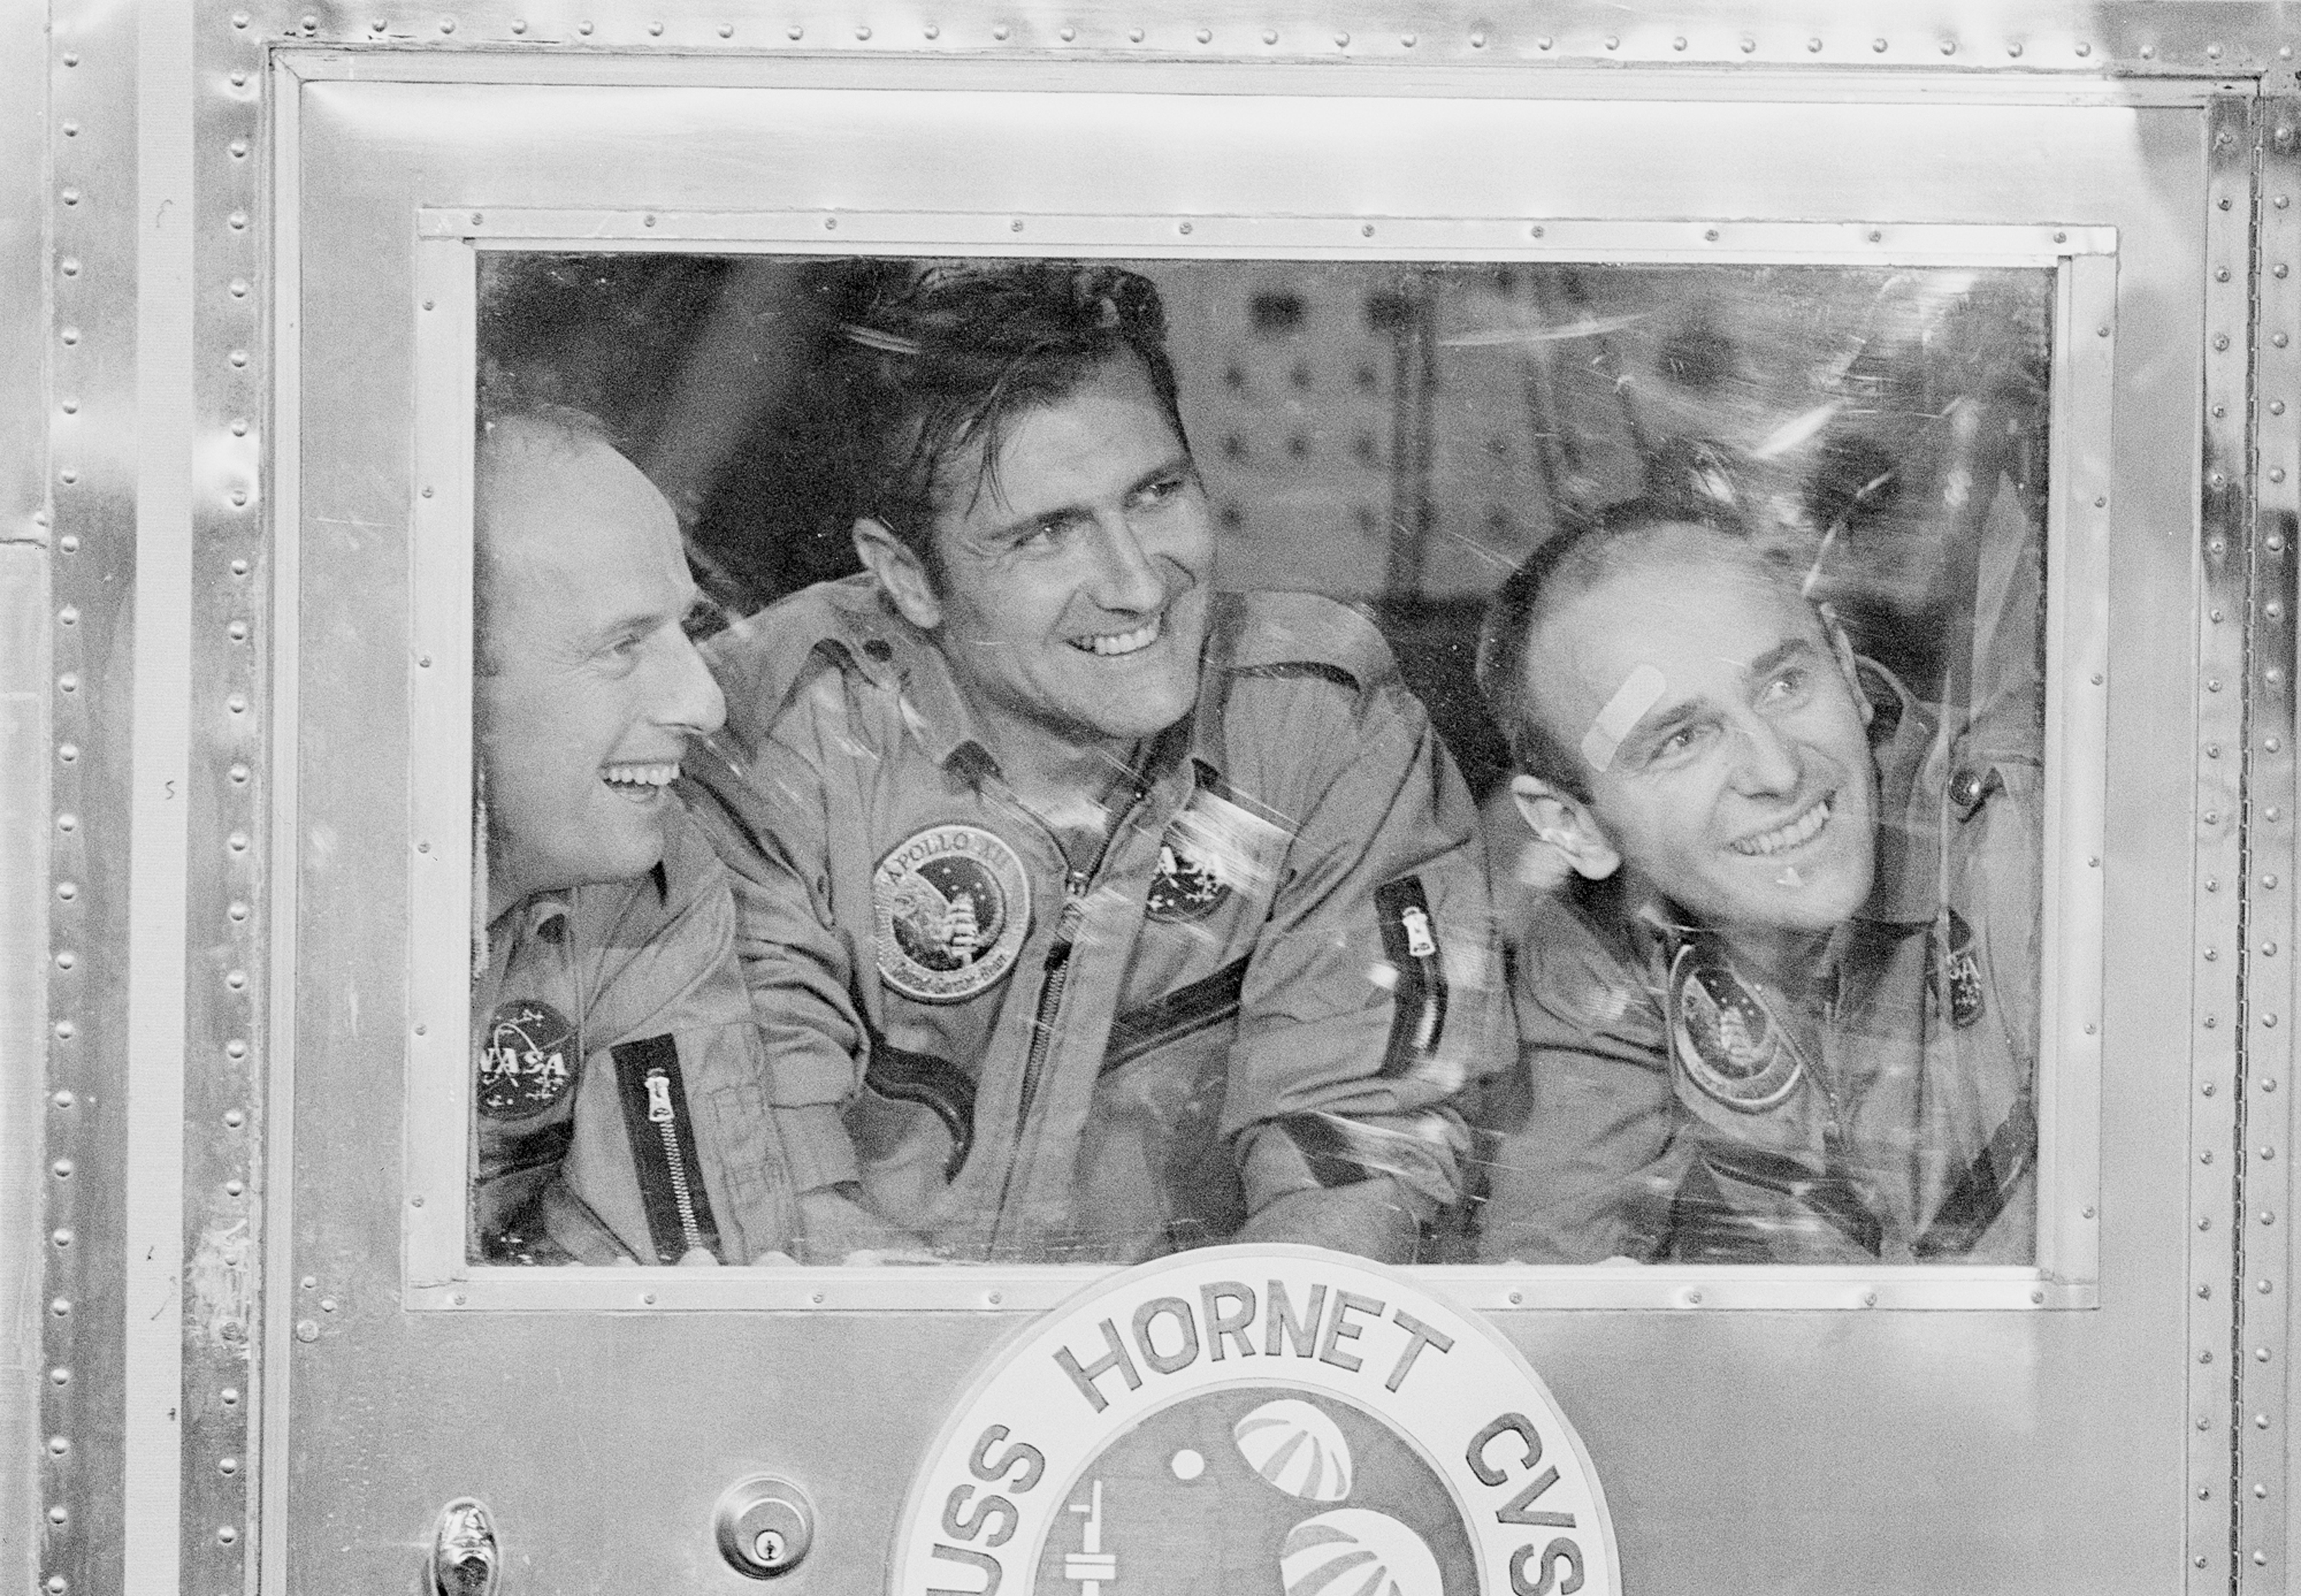 50 Years Ago, Apollo 12 Astronauts Walked on the Moon. They Had the Funniest Crew